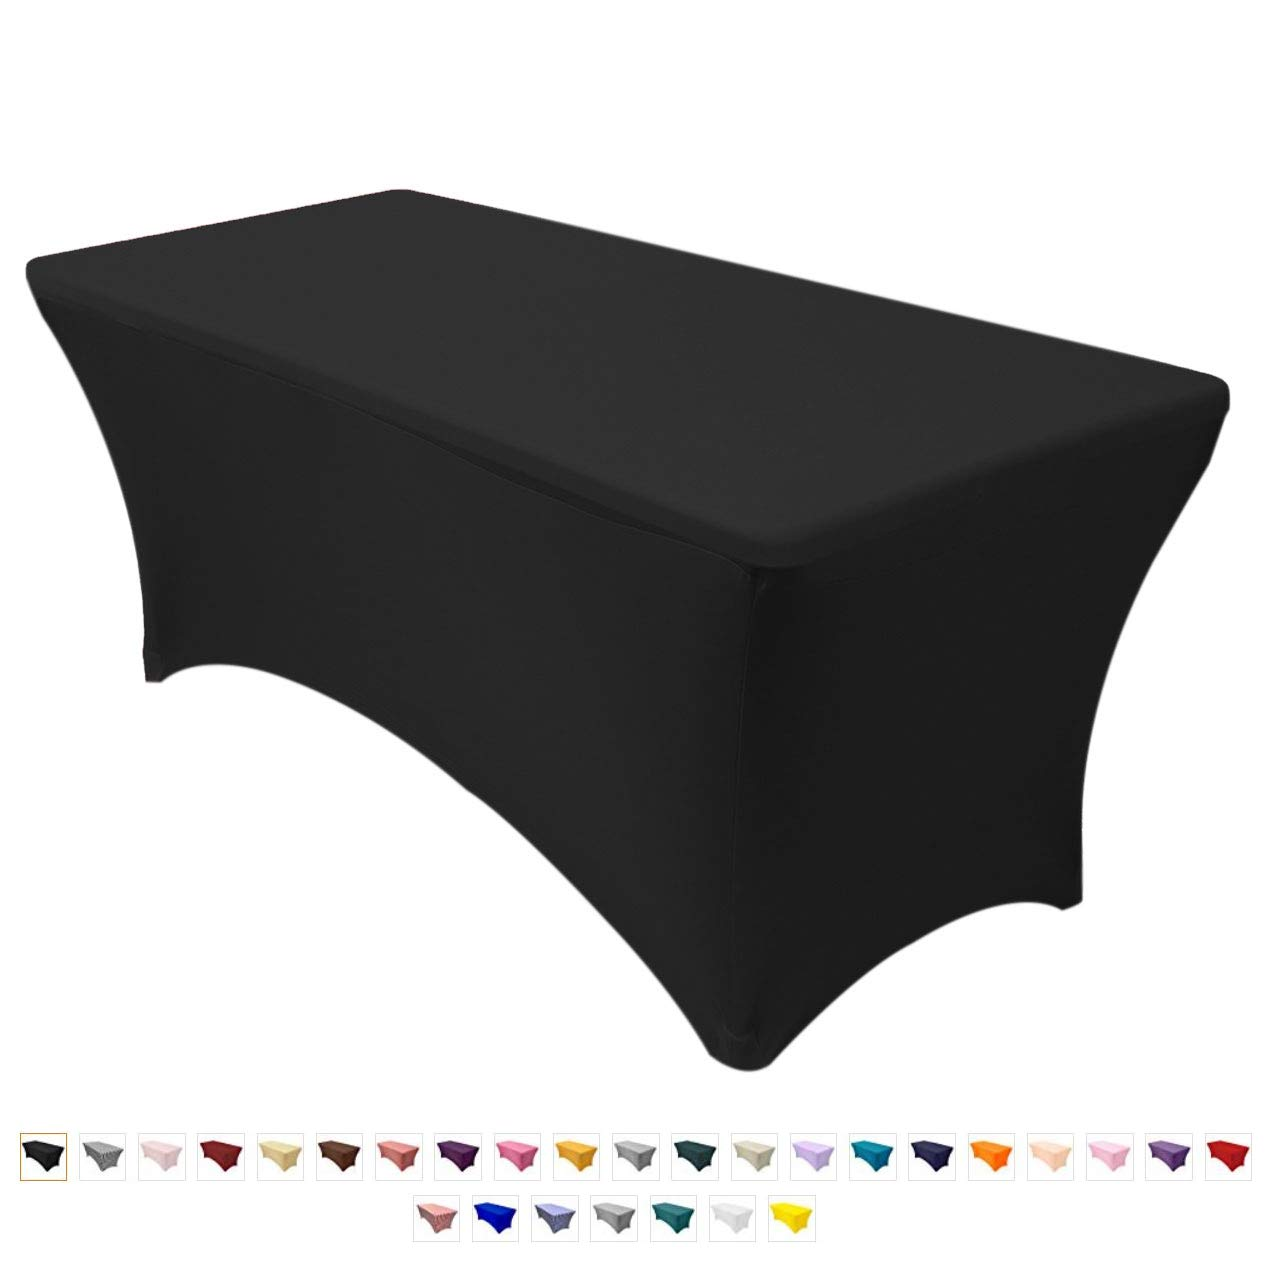 Your Chair Covers – 6 ft Rectangular Stretch Spandex Table Cover – Black, 72 Length x 30 Width x 30 Height Fitted Tablecloth for Standard Folding Tables,Party Table Cloth